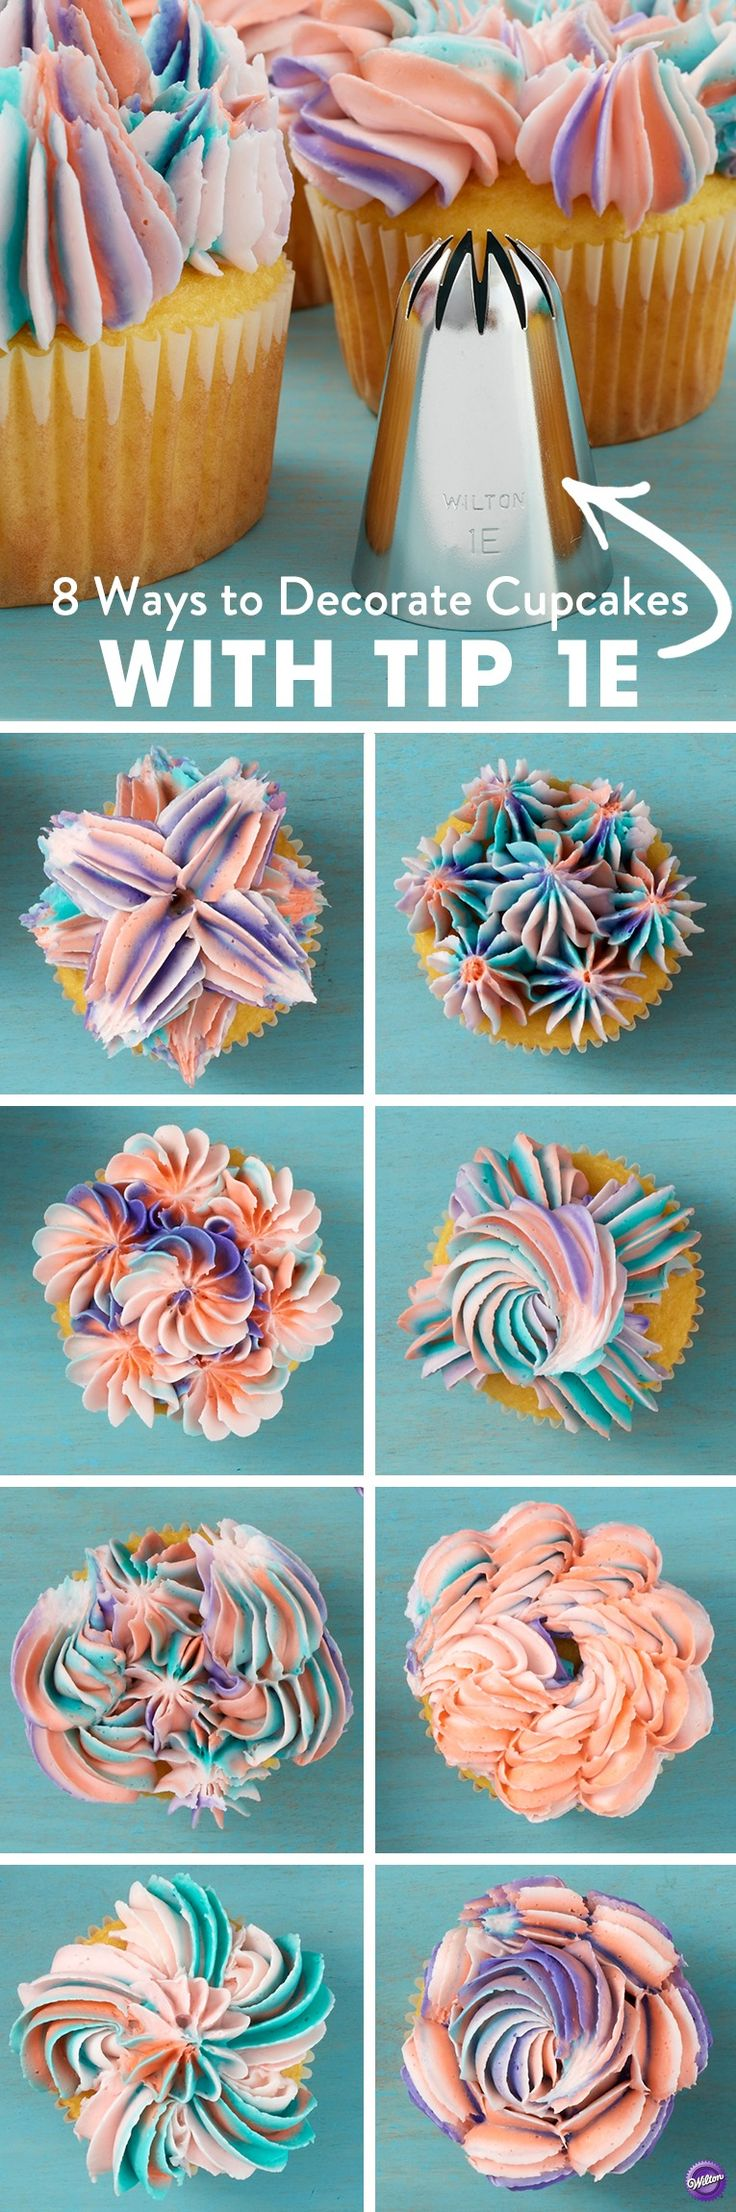 Commonly used to create drop flowers, the large 1E decorating tip can also be used to make amazing shells, stars and more. With this collection of 8 Ways to Decorate Cupcakes Using Tip 1E, you'll learn how to use this tip to make elegant and fun designs that will make your treats pop! Prep your decorating bag with a collection of icing colors to get the unique looks.